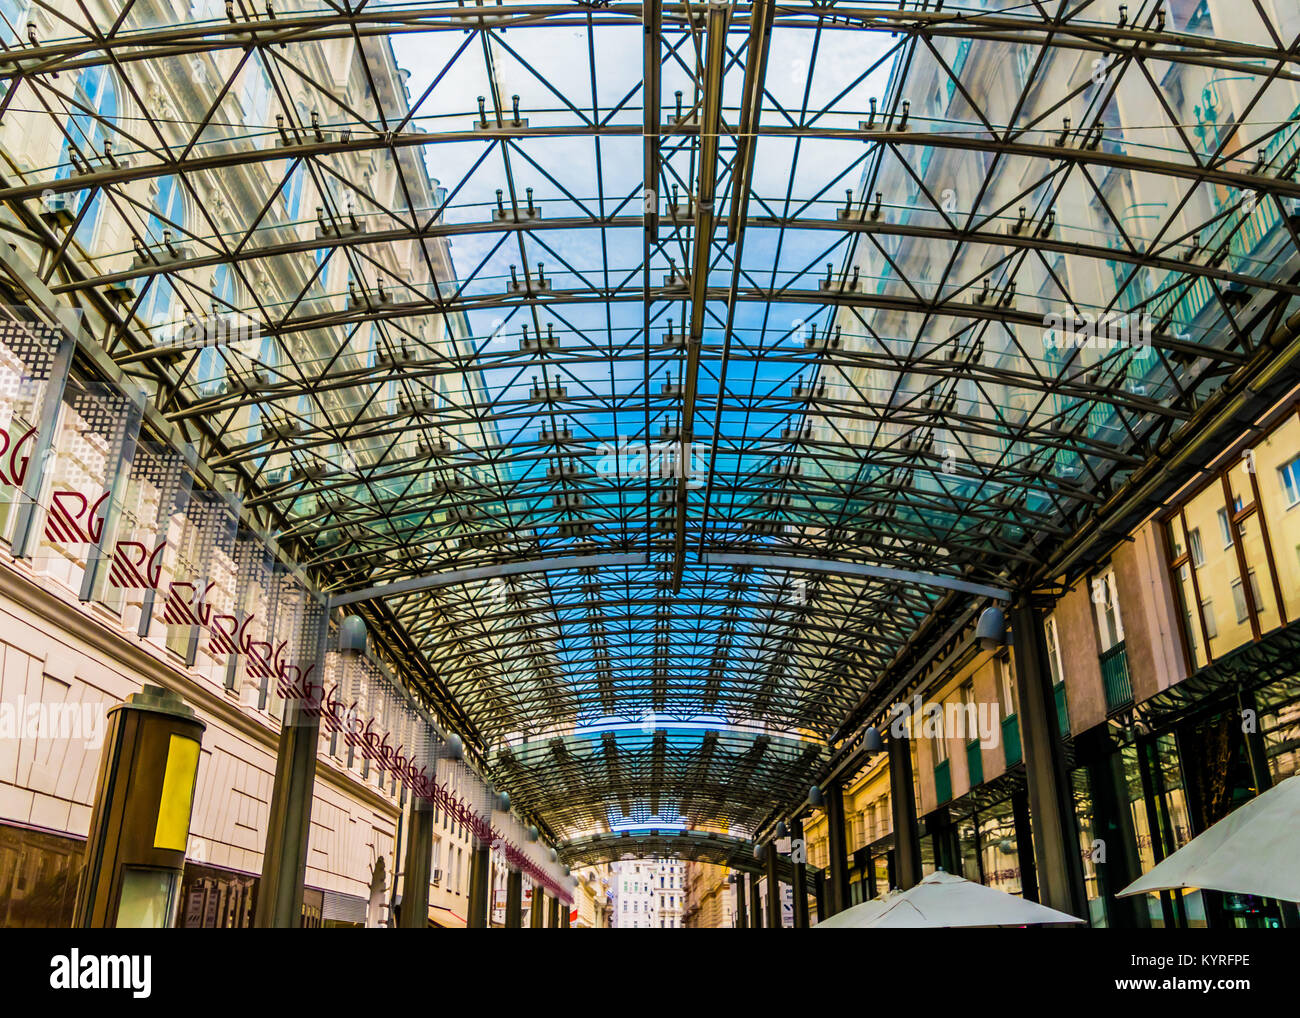 Modern architecture detail, steel and glass ceiling. Patterned glass ceiling covers gallery between older buildings. - Stock Image